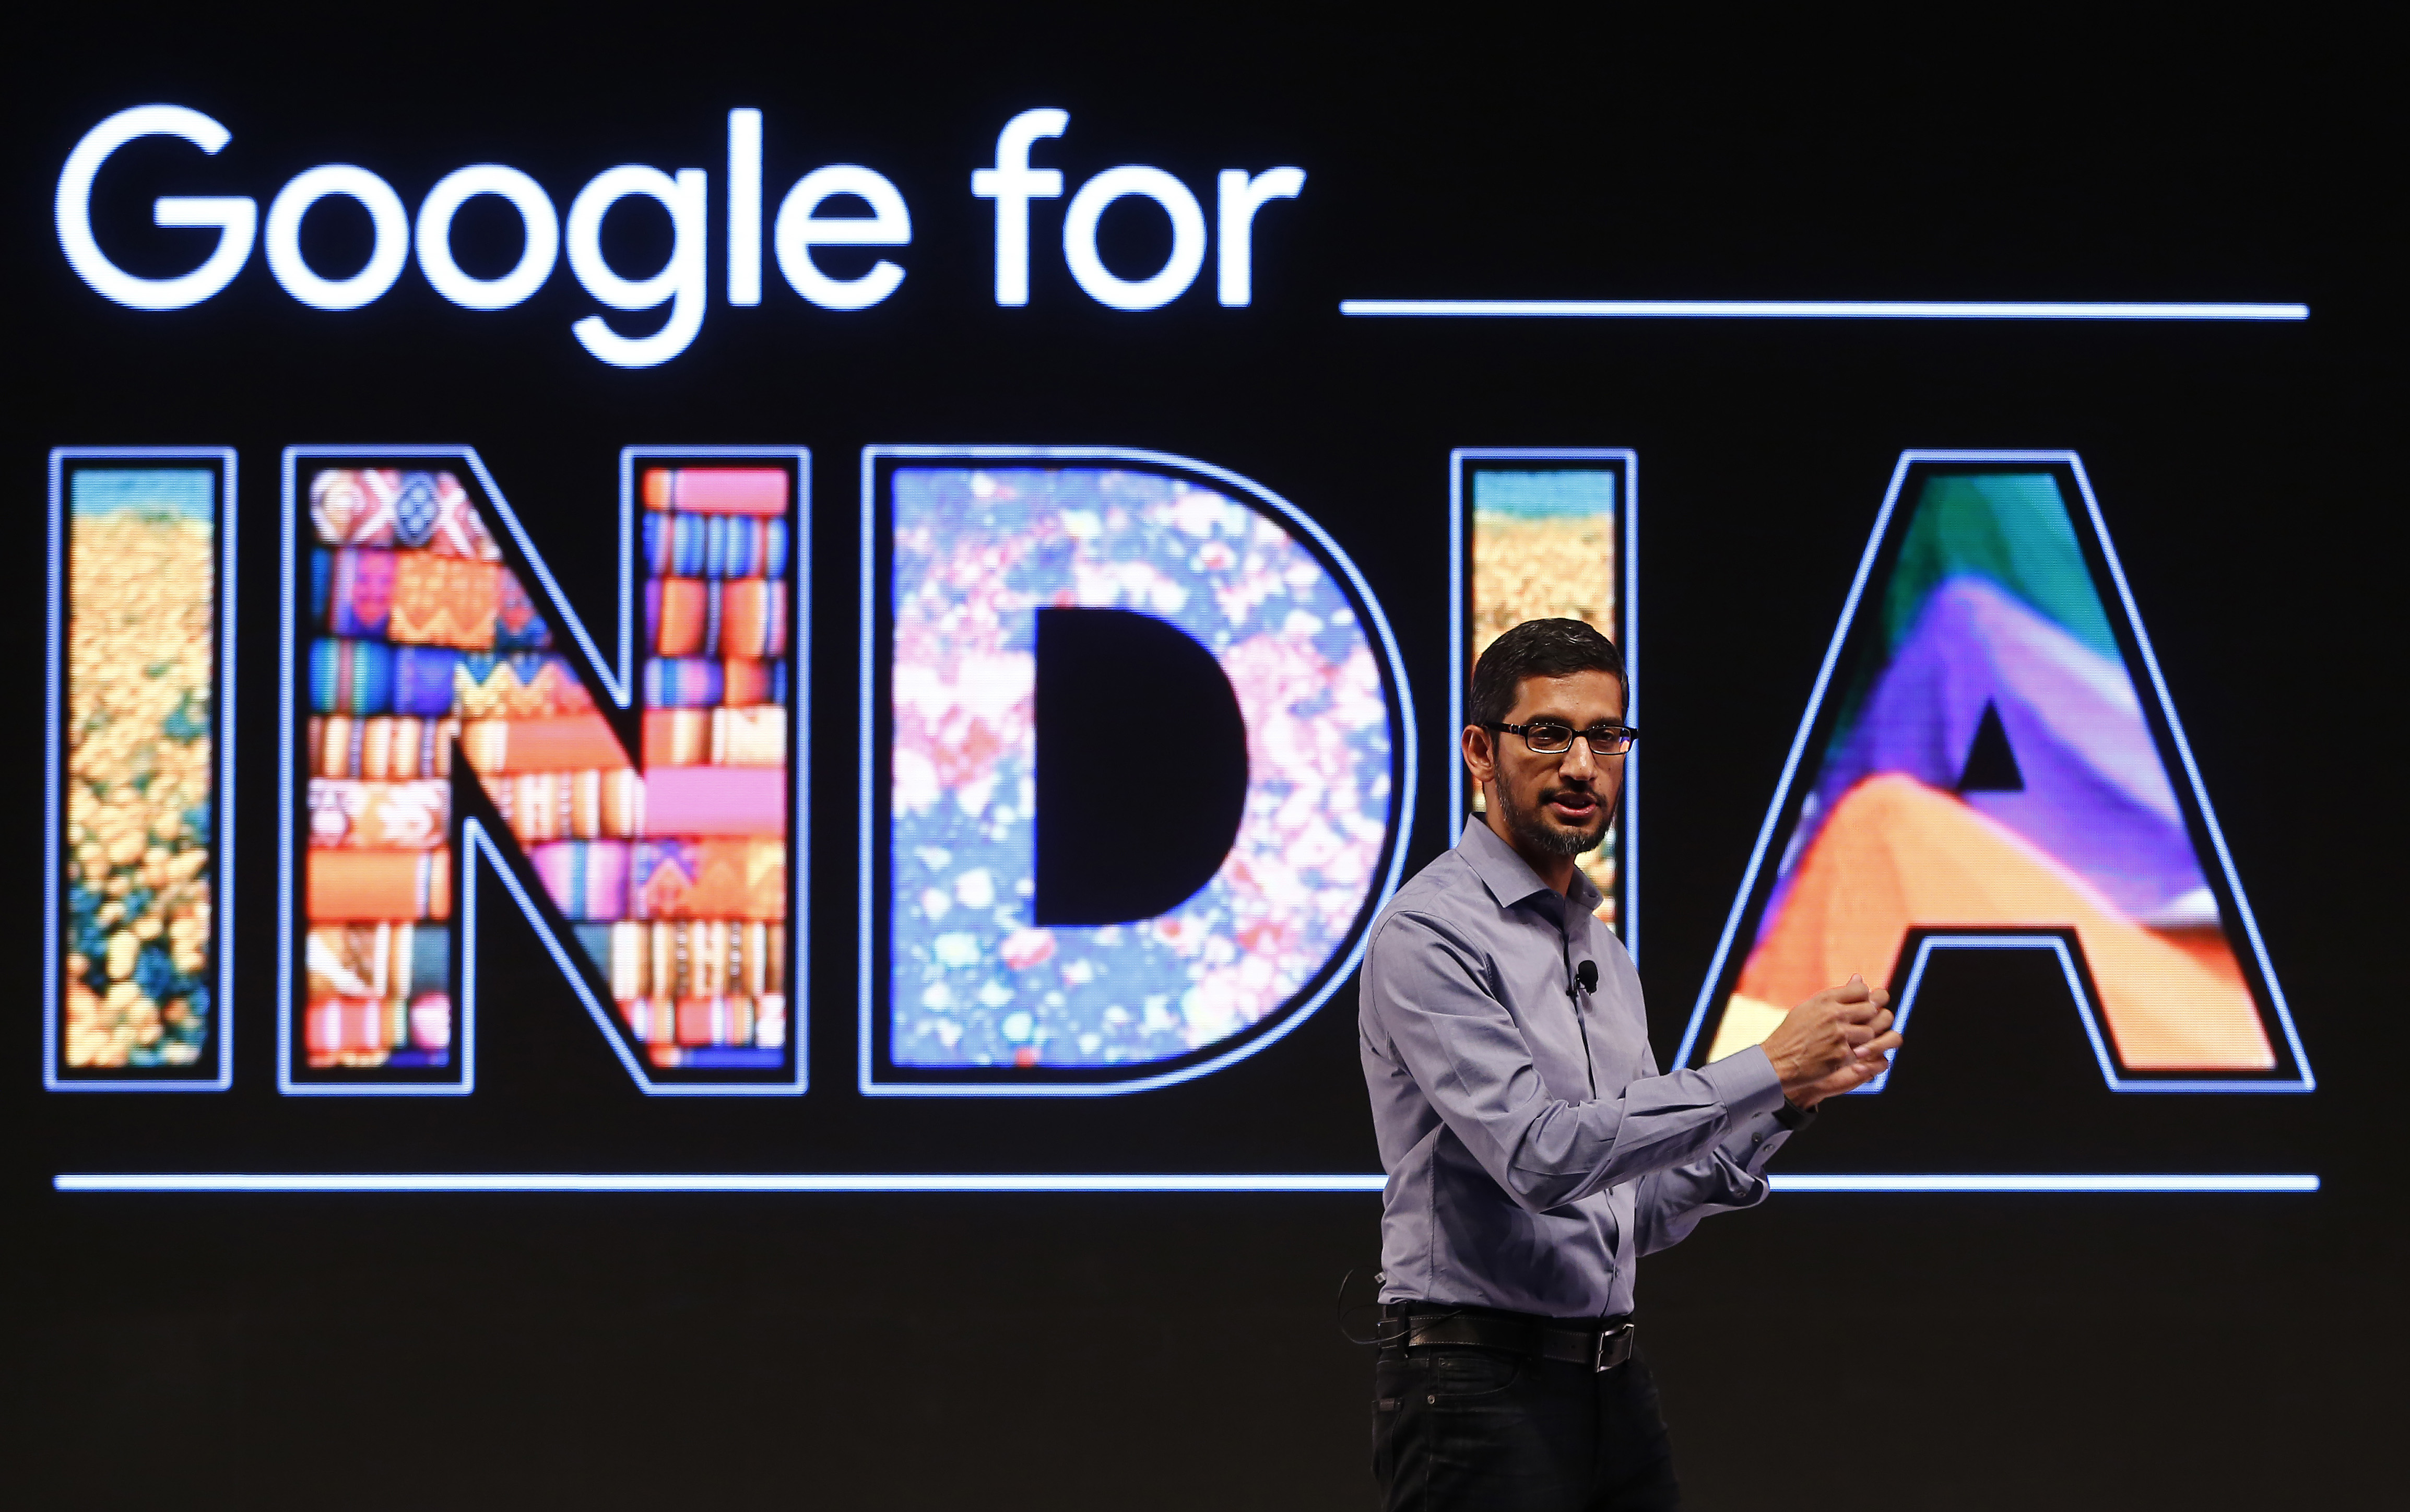 Google CEO Sundar Pichai gestures as he addresses a news conference in New Delhi, India, December 16, 2015. New Google leader Pichai pledged on Wednesday to use India as a testing ground for its products as the U.S. tech giant targets hundreds of millions of consumers in the developing world set to move online in the next few years. REUTERS/Adnan Abidi - RTX1YX7I